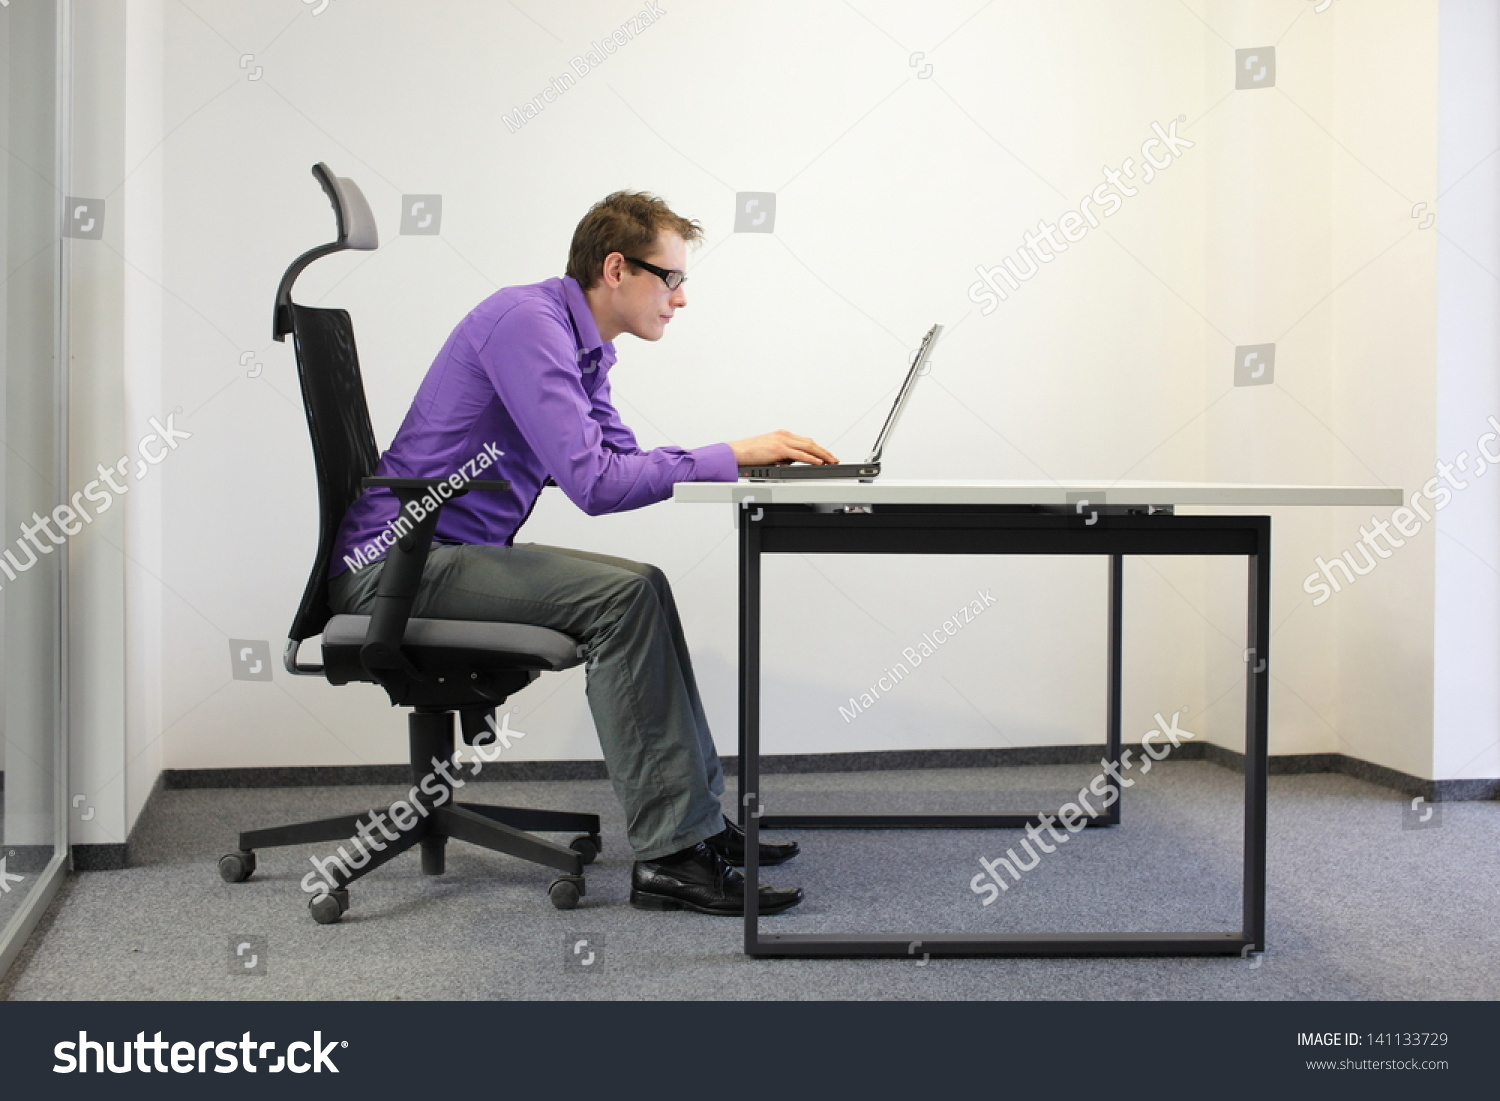 Bad Sitting Posture Laptop Shortsighted Business Stock